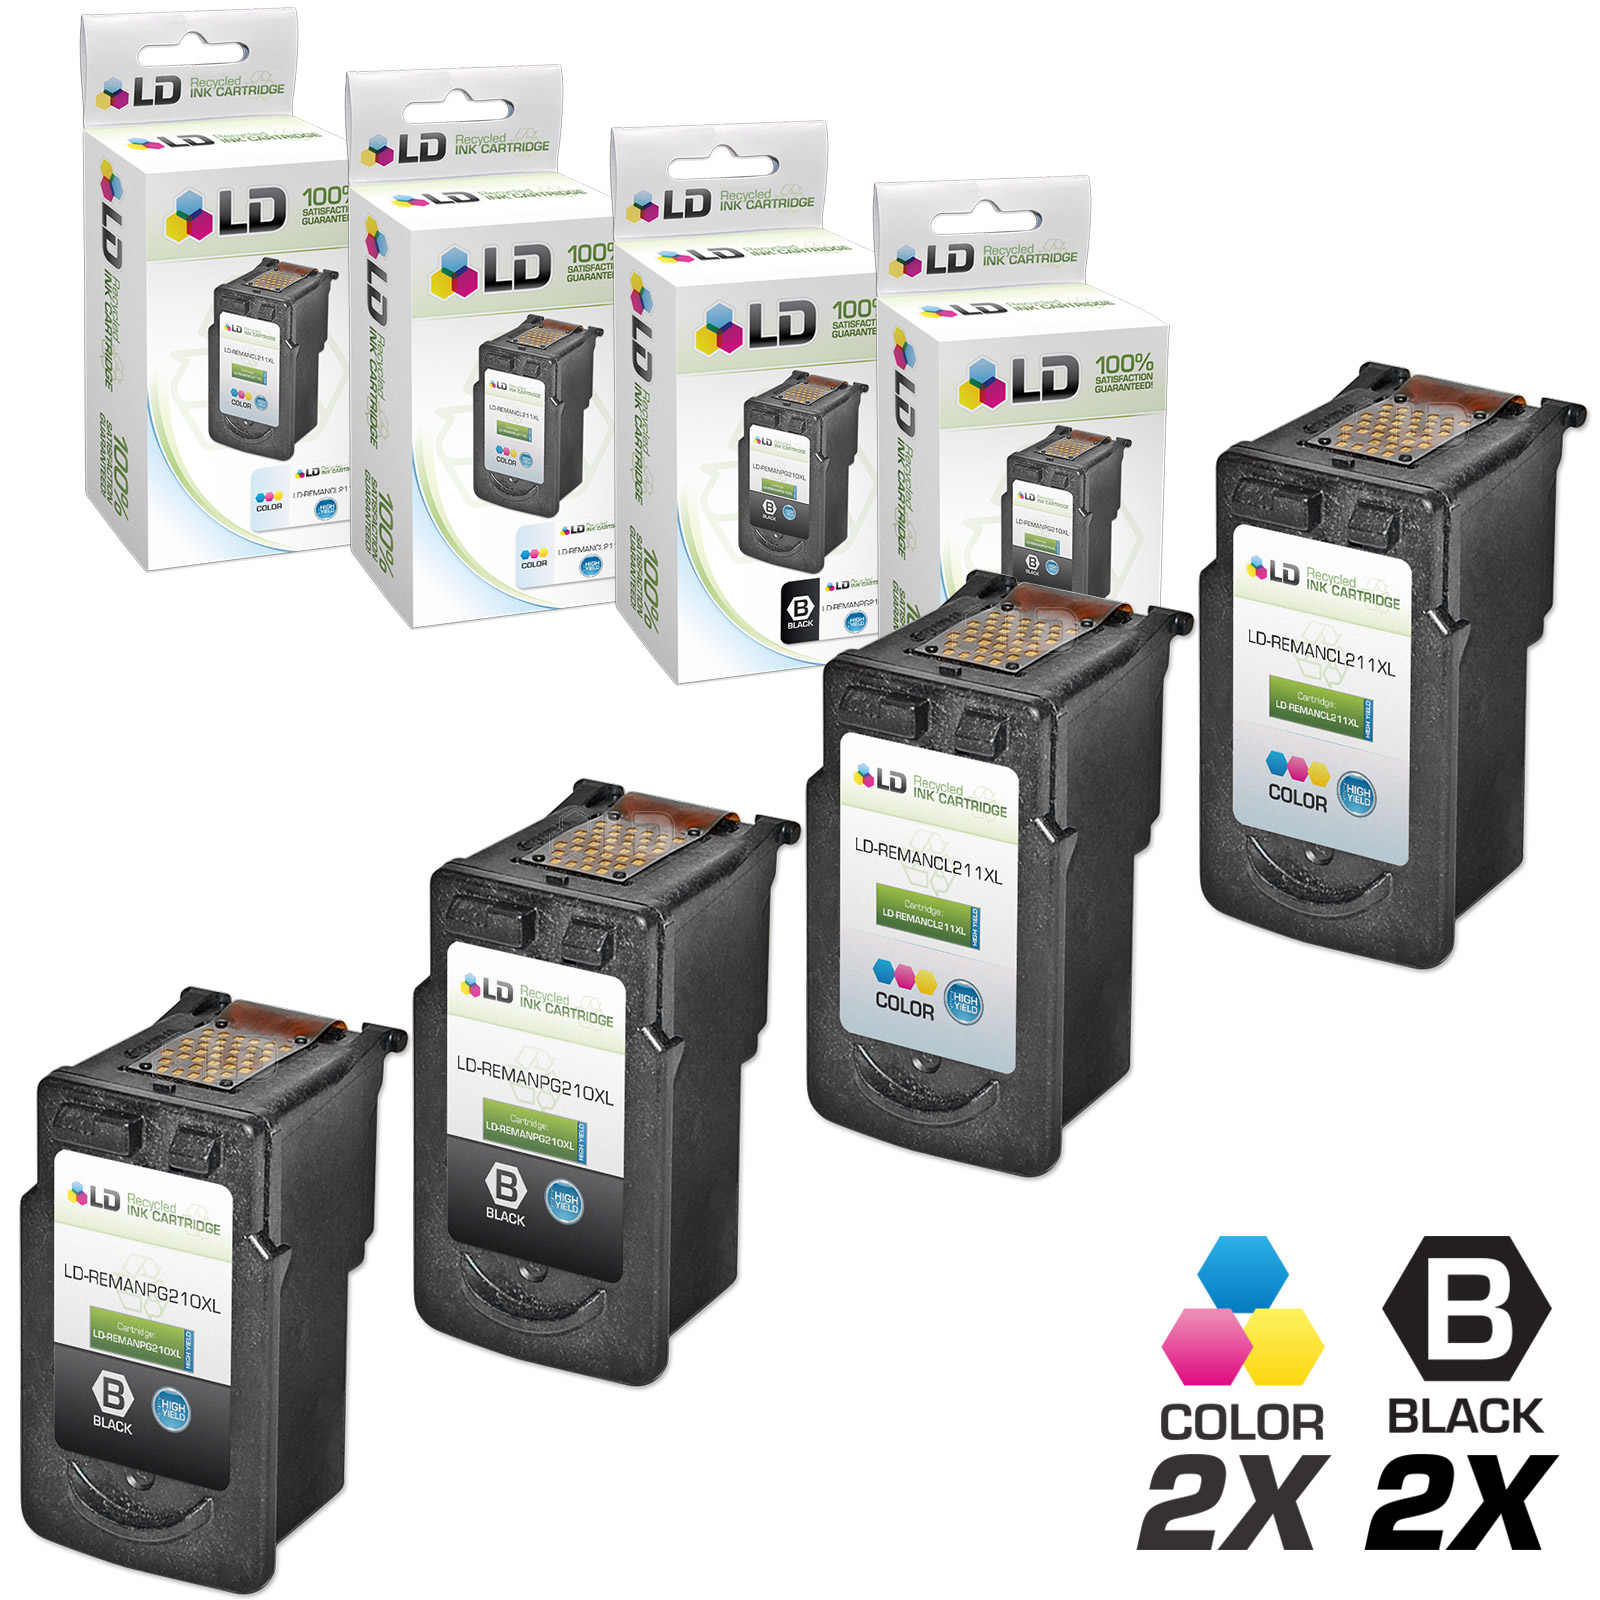 LD Canon Remanufactured PG210XL / PG210 & CL211XL / CLI211 Set of 4 High Yield Ink Cartridges: Includes 2 Black PG-210XL